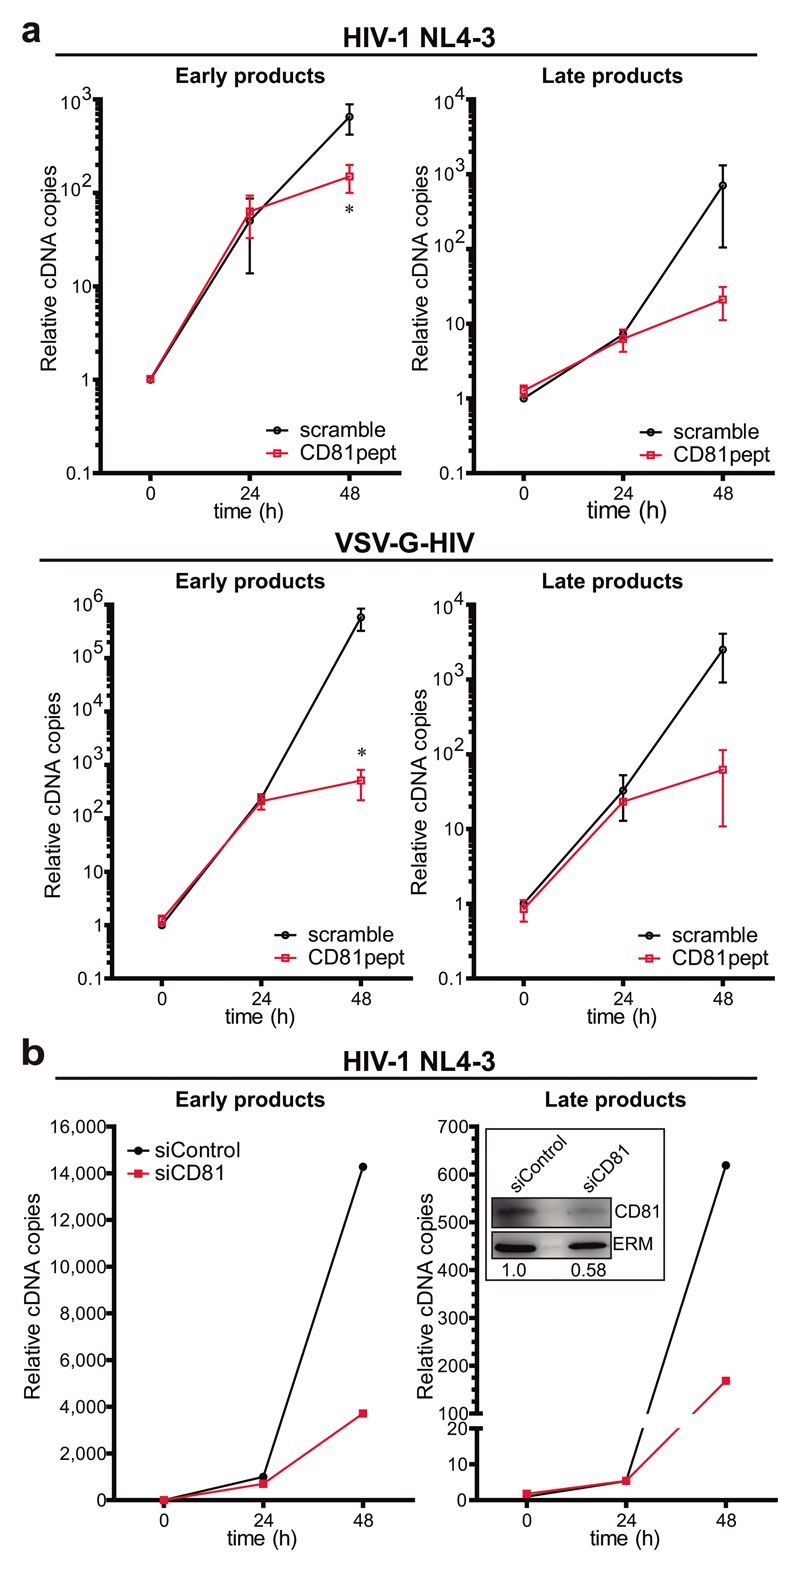 CD81 regulates X4-tropic HIV-1 RT. a) Primary T lymphoblasts pre-treated with 2μM of scramble or CD81pept for 5 days, were infected with HIV-1 NL4-3 strain or HIV-VSV-G. Early or late RT products were measured as in Figure 2a . Data are mean fold change ± SEM of 2 independent experiments performed in triplicate, and analysed by two-way ANOVA with Bonferroni's post-test. b) Primary T lymphoblasts transfected with control or CD81 siRNA were infected with NL4-3 strain, and RT was measured as in Figure 2a . Data are from a representative experiment out of two. In-box shows immunoblots of whole cell lysates from the represented experiment probed for CD81, and ERM as loading control. The CD81/ERM signal ratio is indicated.